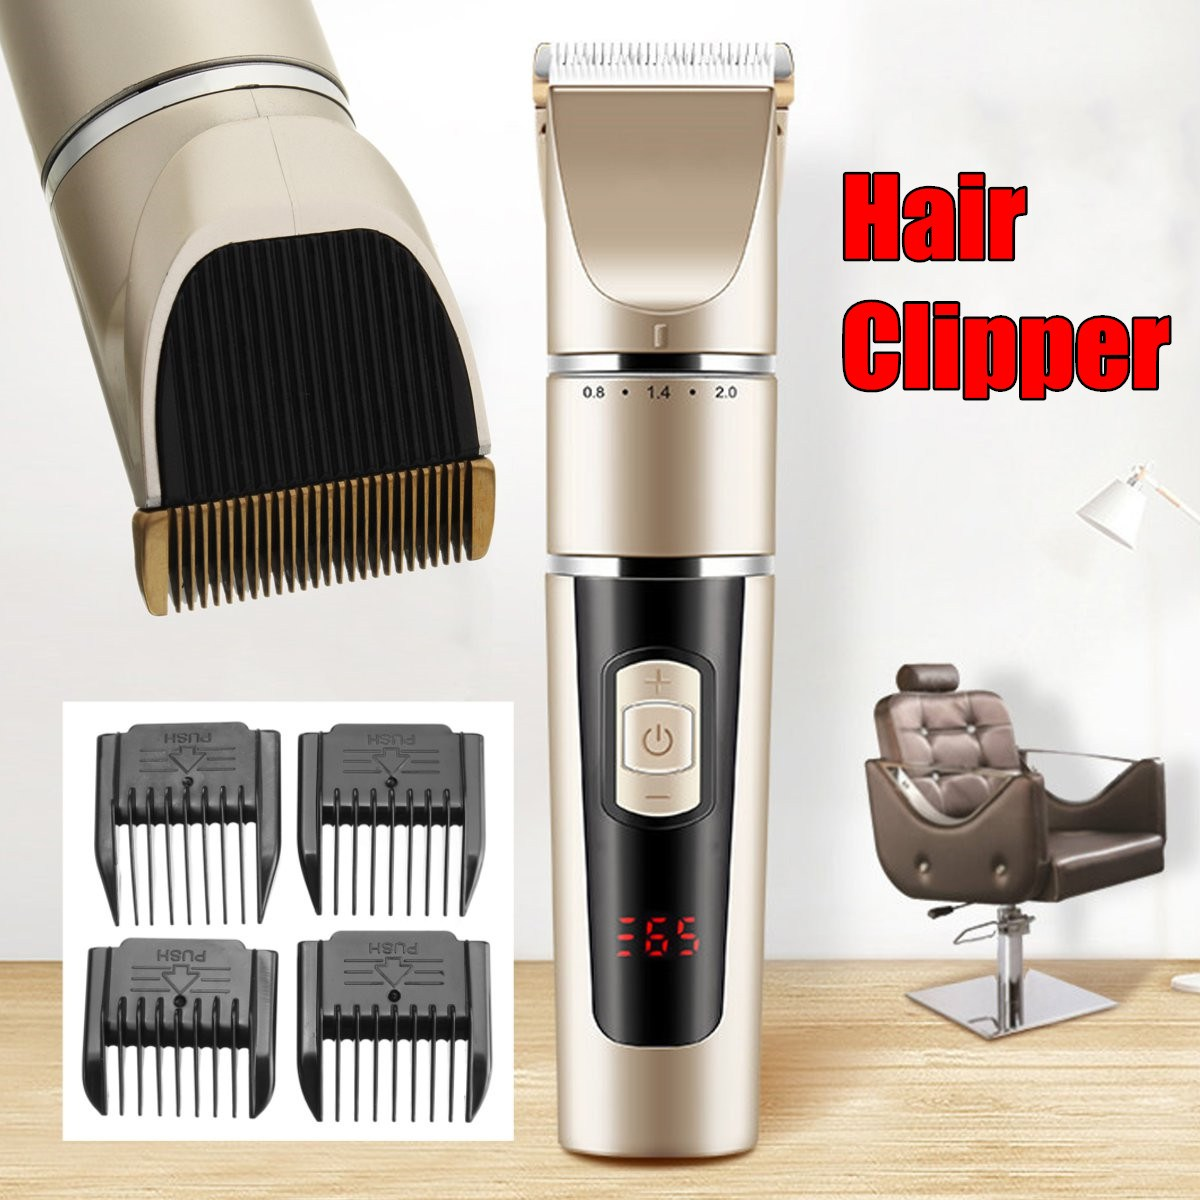 Professional Electric Hair Clipper Rechargeable Hair Trimmer Hair Cutting Machine To Haircut Beard Trimer adult children rechargeable electric hair clipper beard trimmer hair cutting machine haircut styling tools hs11